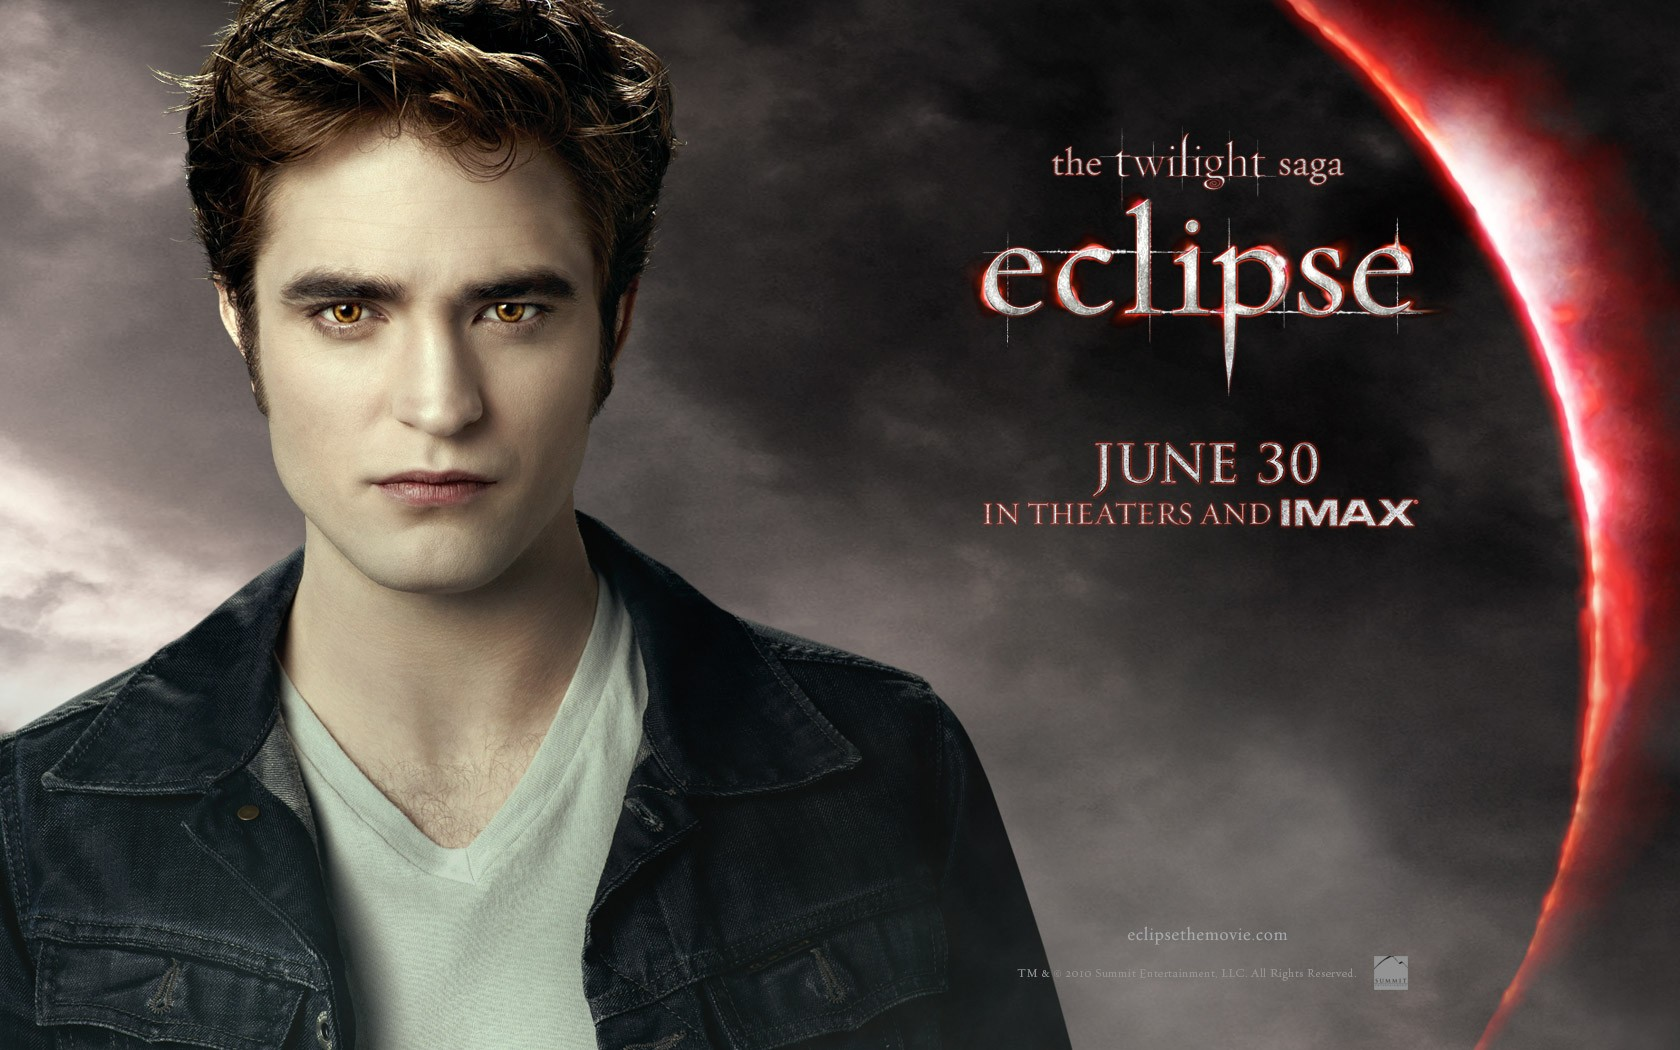 Il wallpaper ufficiale di Edward (Robert Pattinson) del film The Twilight Saga: Eclipse